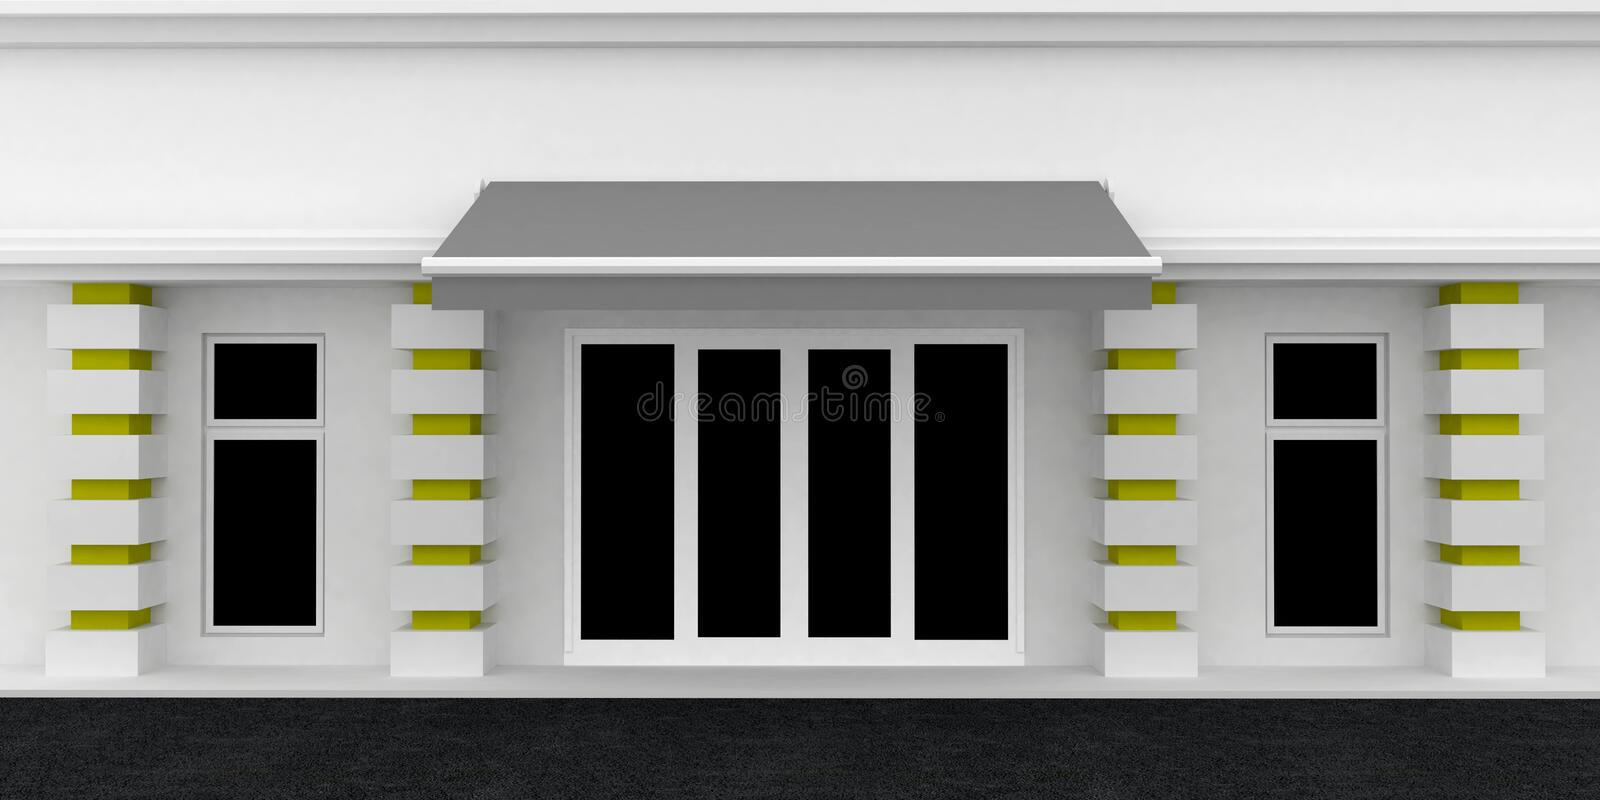 Shopfront. Serie. Shopfront. White Gray building exterior shopwindow with awning and windows empty for your product presentation, paste your shop, boutique royalty free illustration